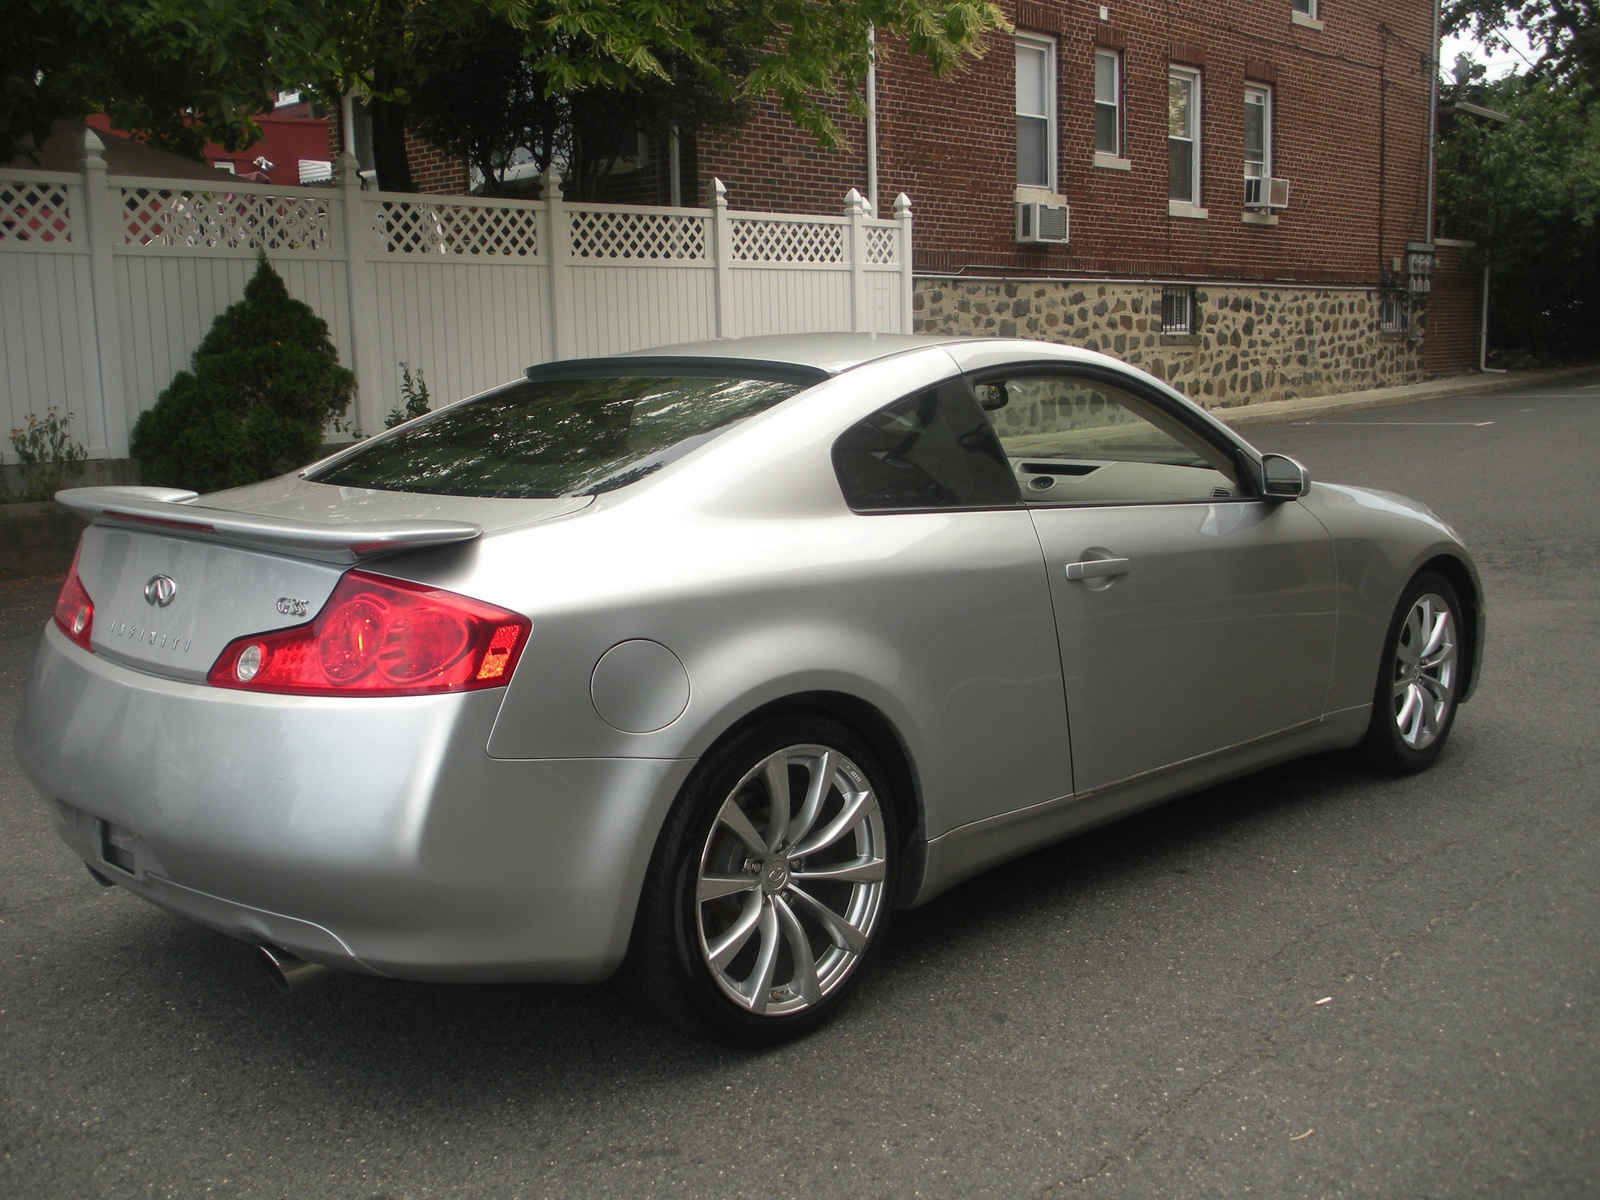 2004 infiniti g35 coupe price new. Black Bedroom Furniture Sets. Home Design Ideas